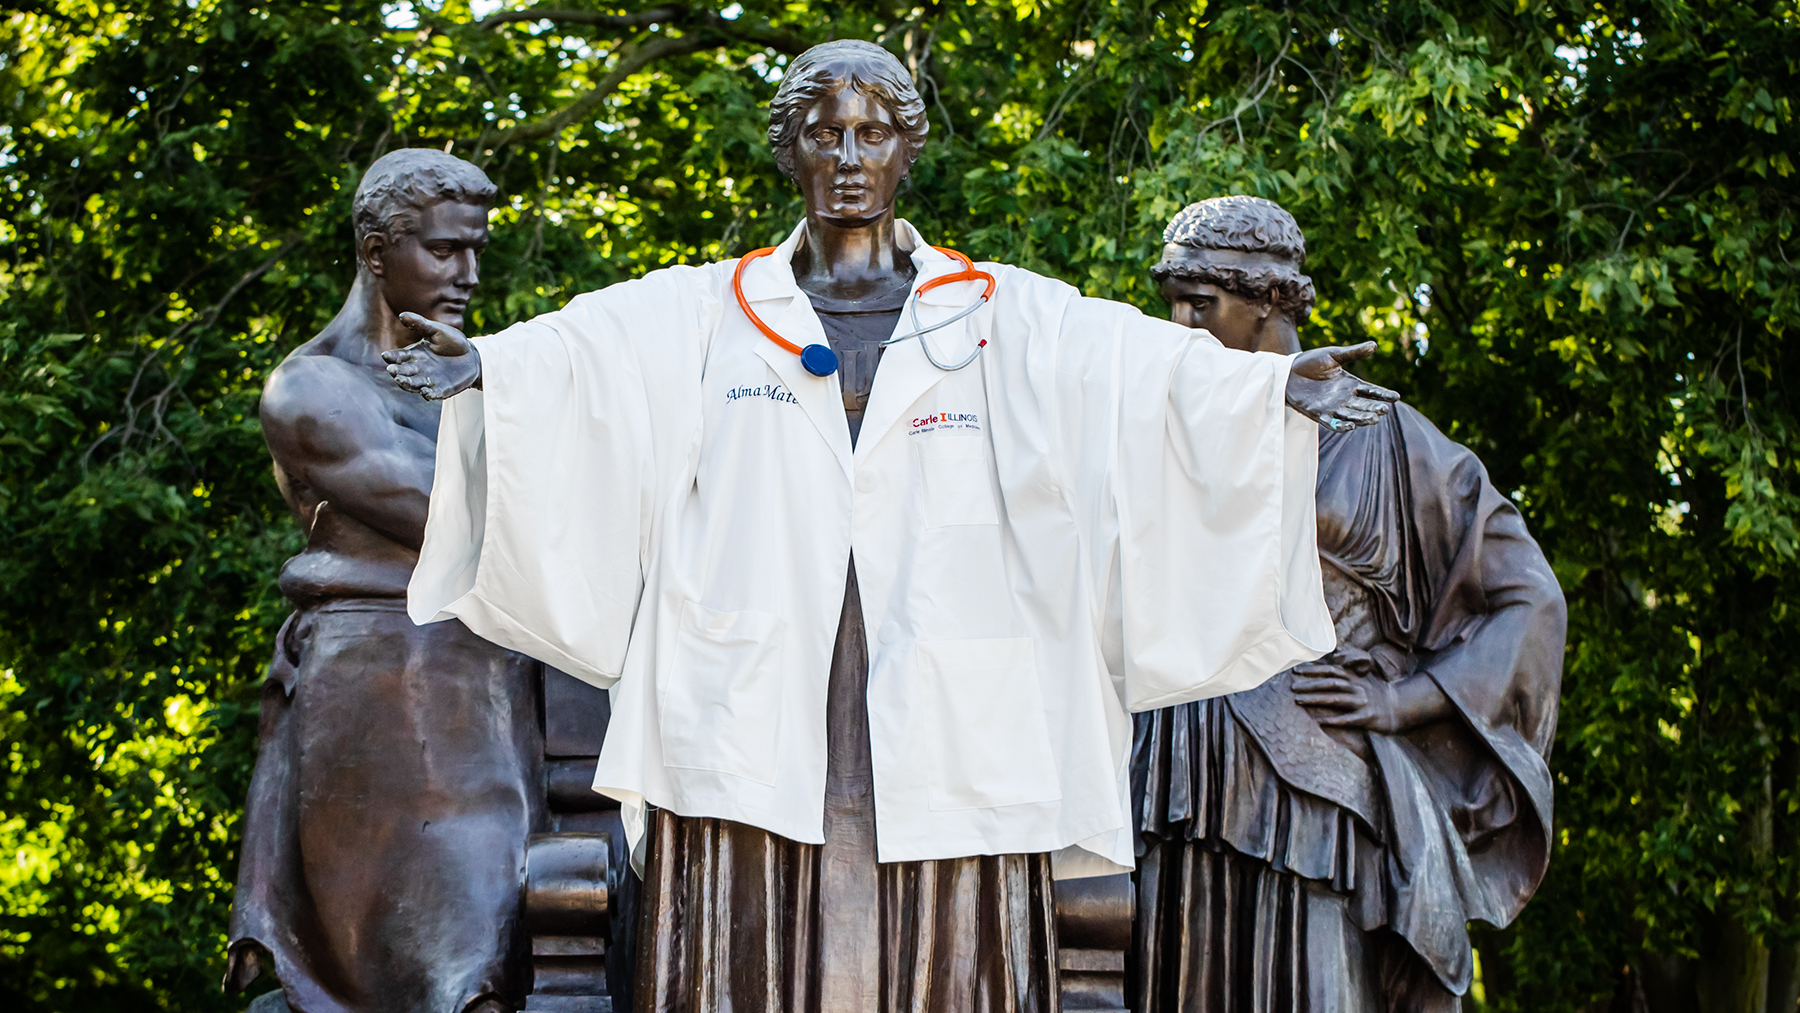 Alma Mater wears a lab coat to welcome the first class of Carle Illinois College of Medicine students